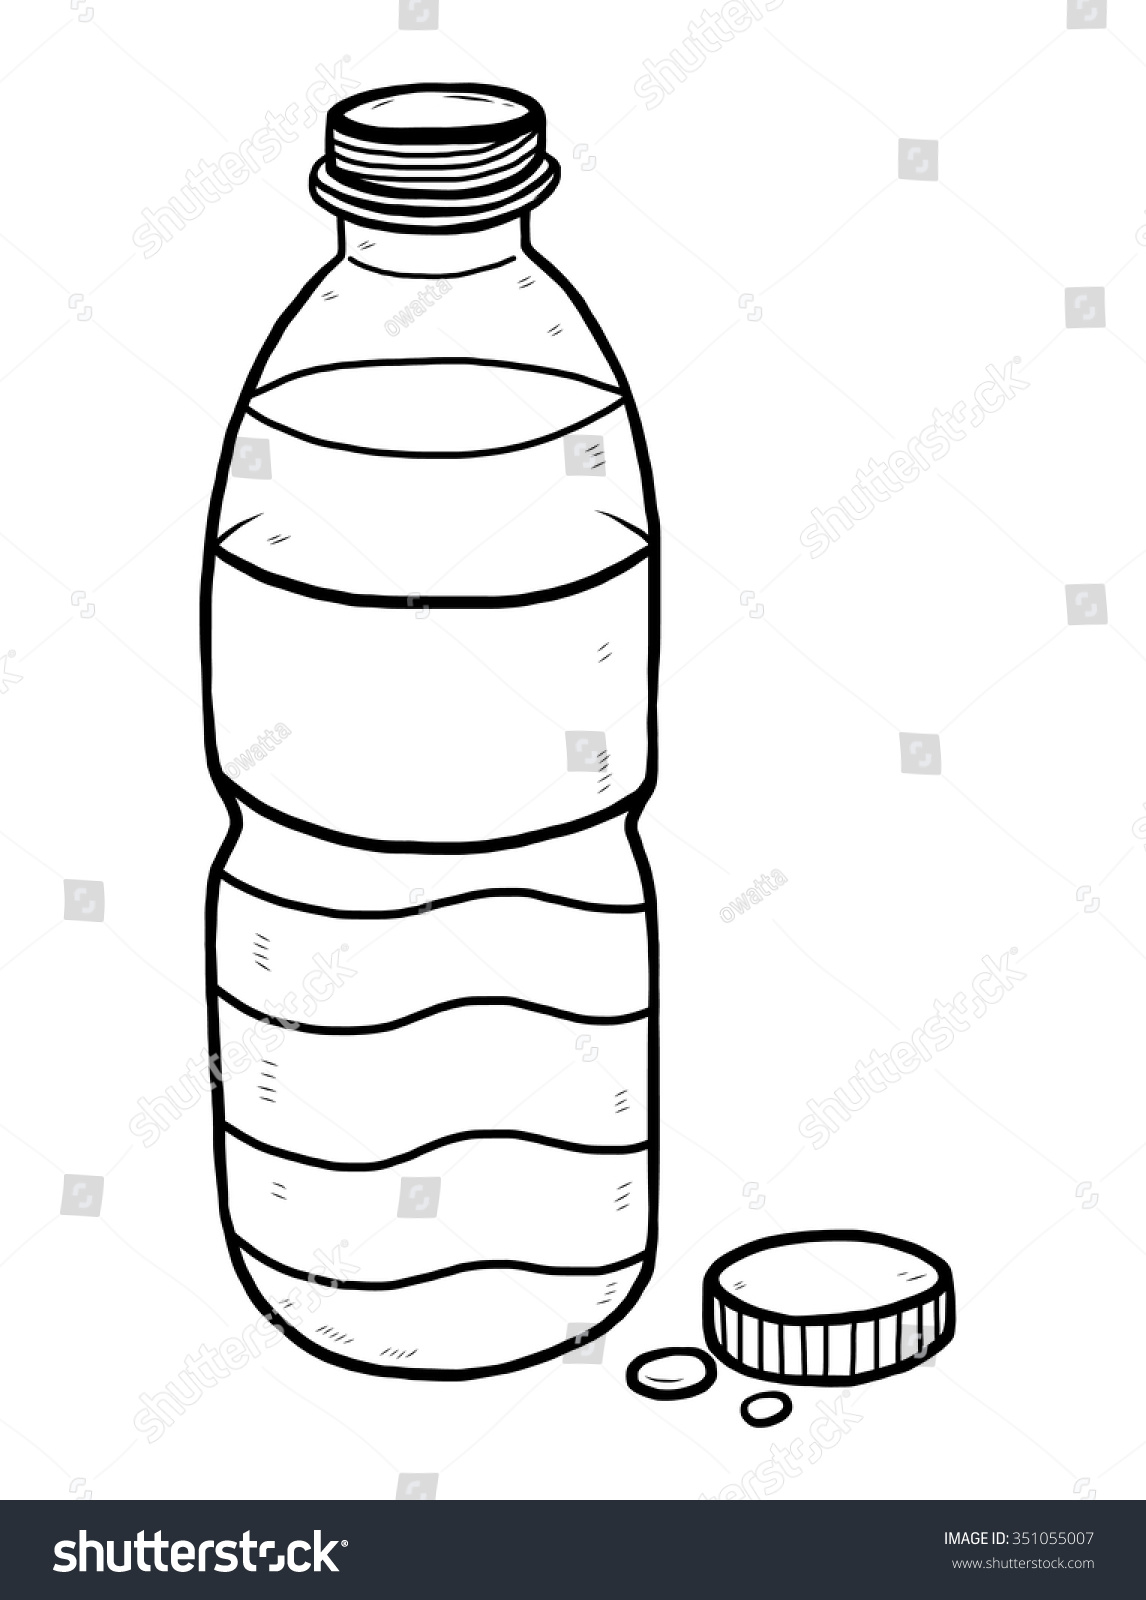 This is a graphic of Delicate Bottle Cartoon Drawing